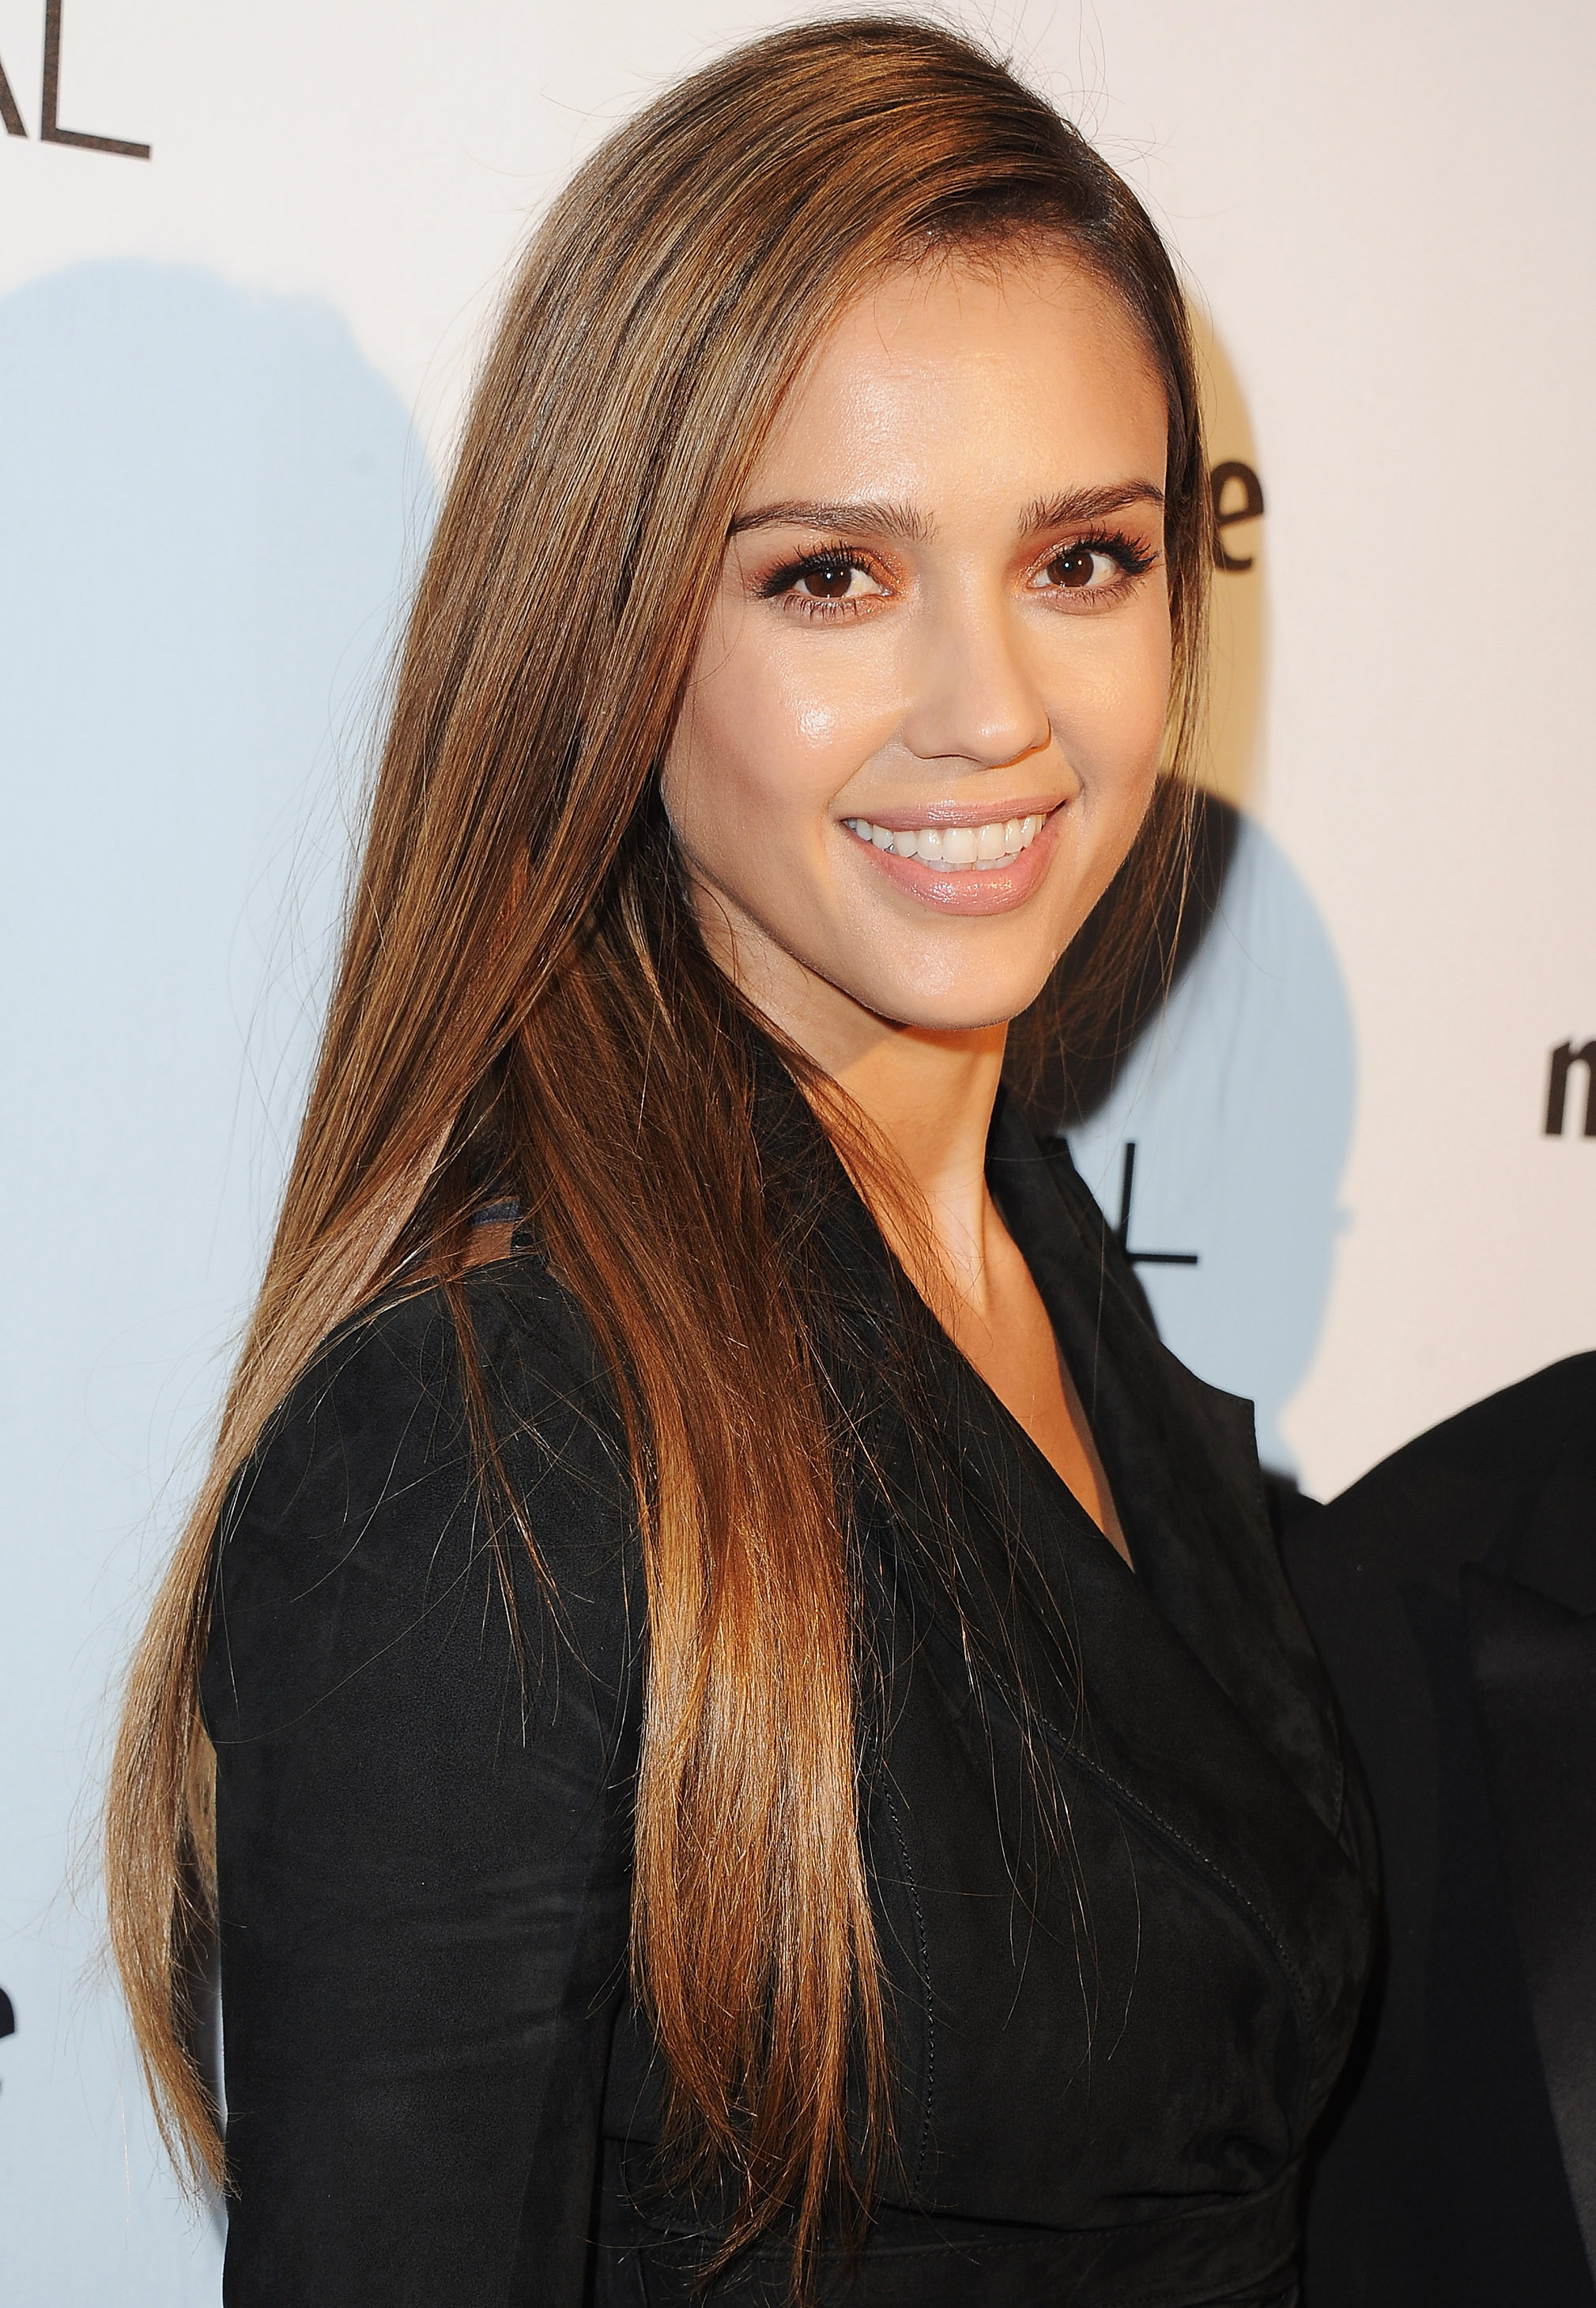 Jessica Alba Meets a Fan With Her Face Tattooed on His Arm